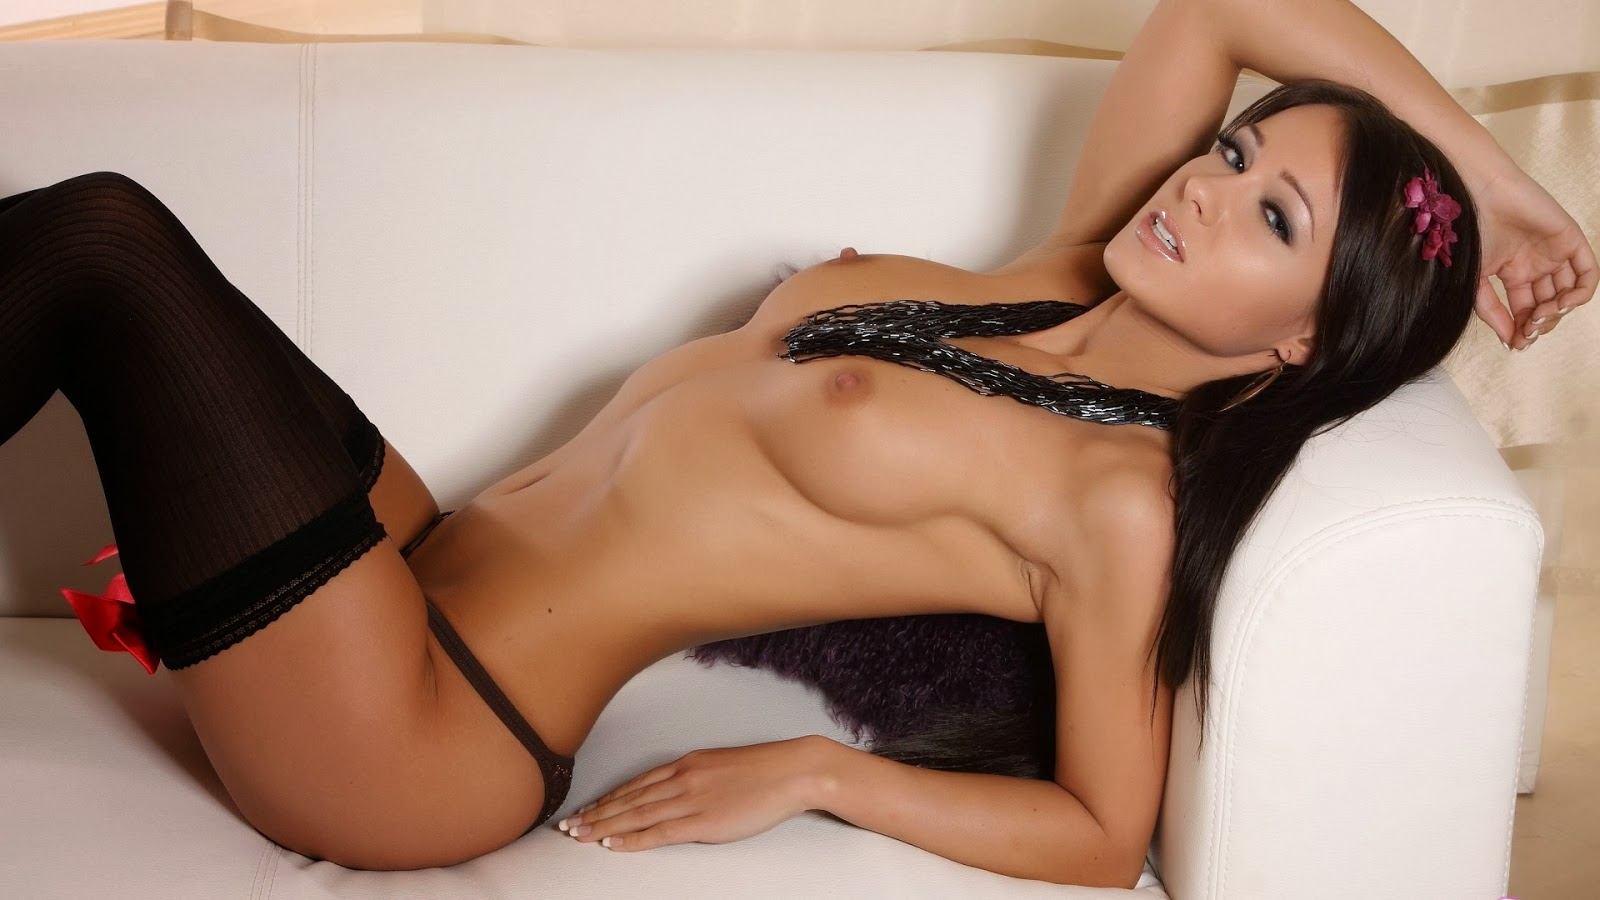 Sexy Naked Melisa Brunette Diva Wallpaper